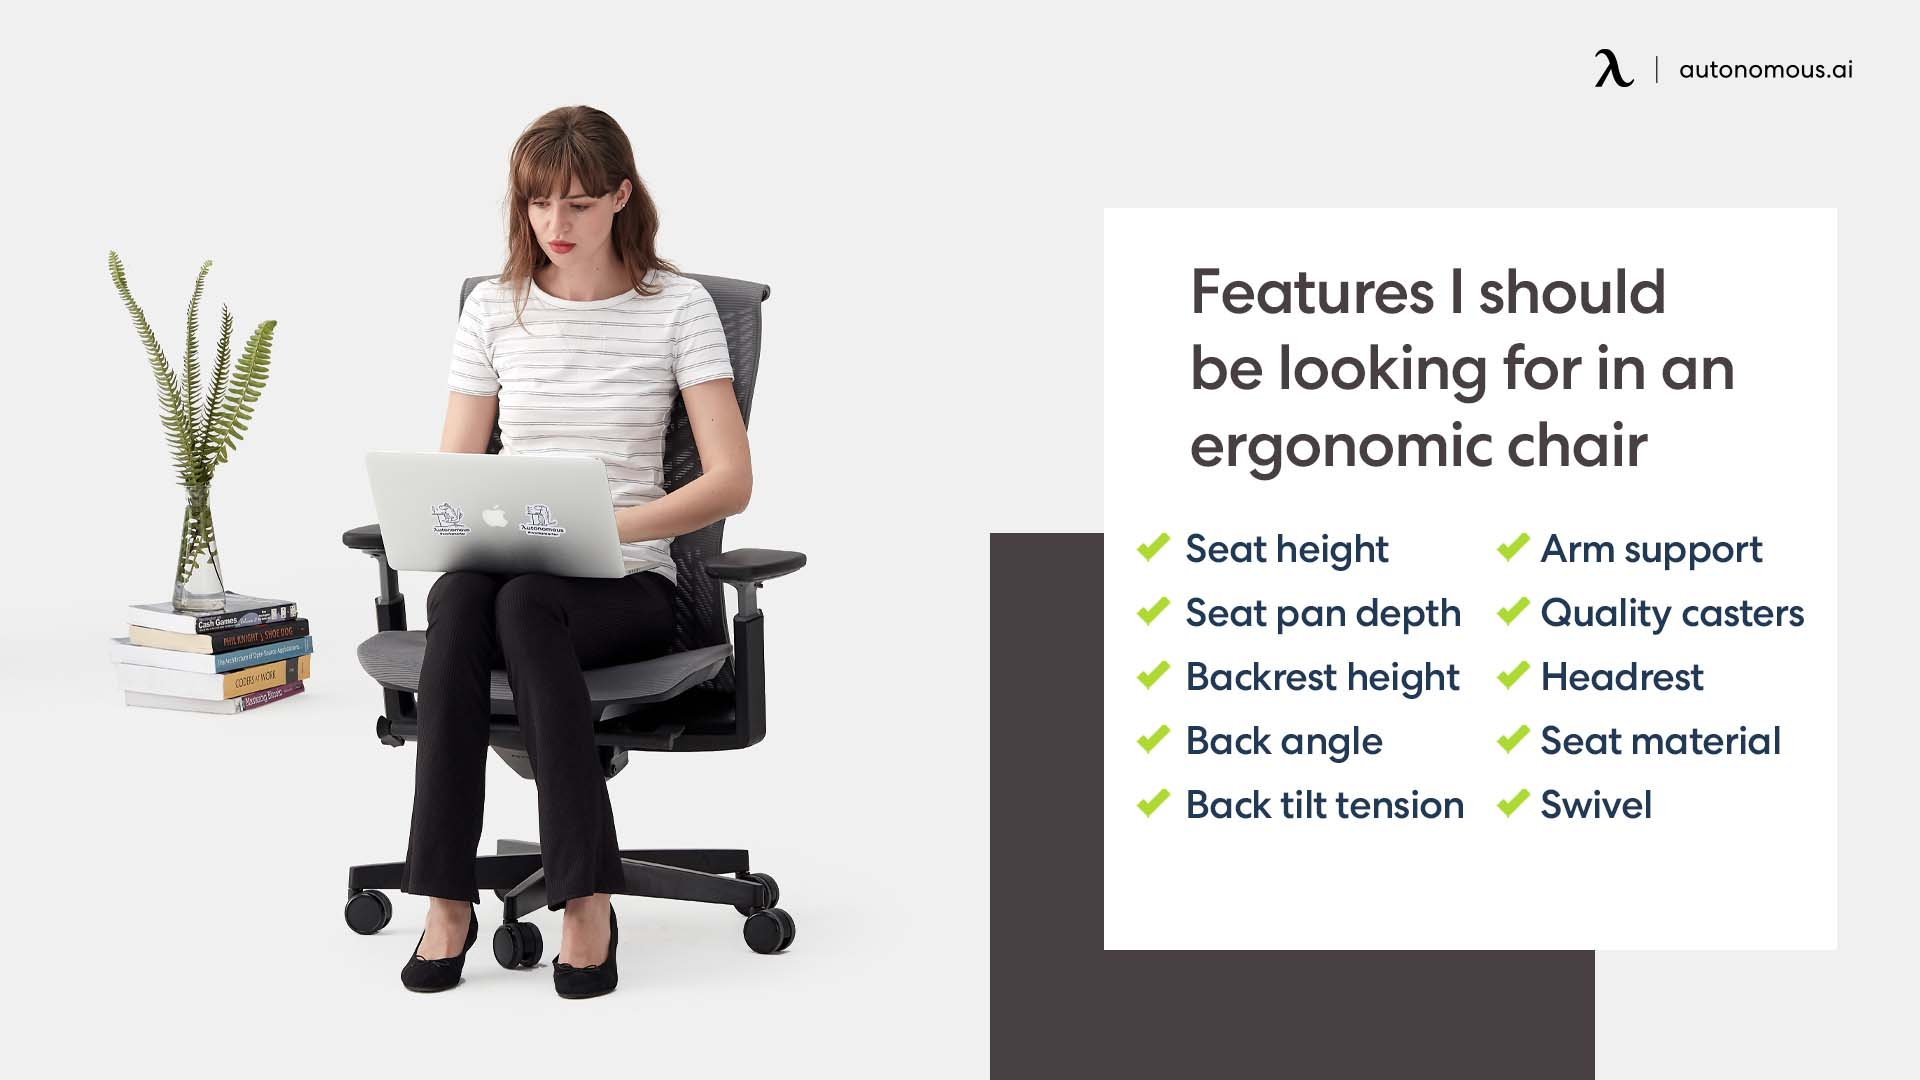 Photo of features I should be looking for in an ergonomic office chair